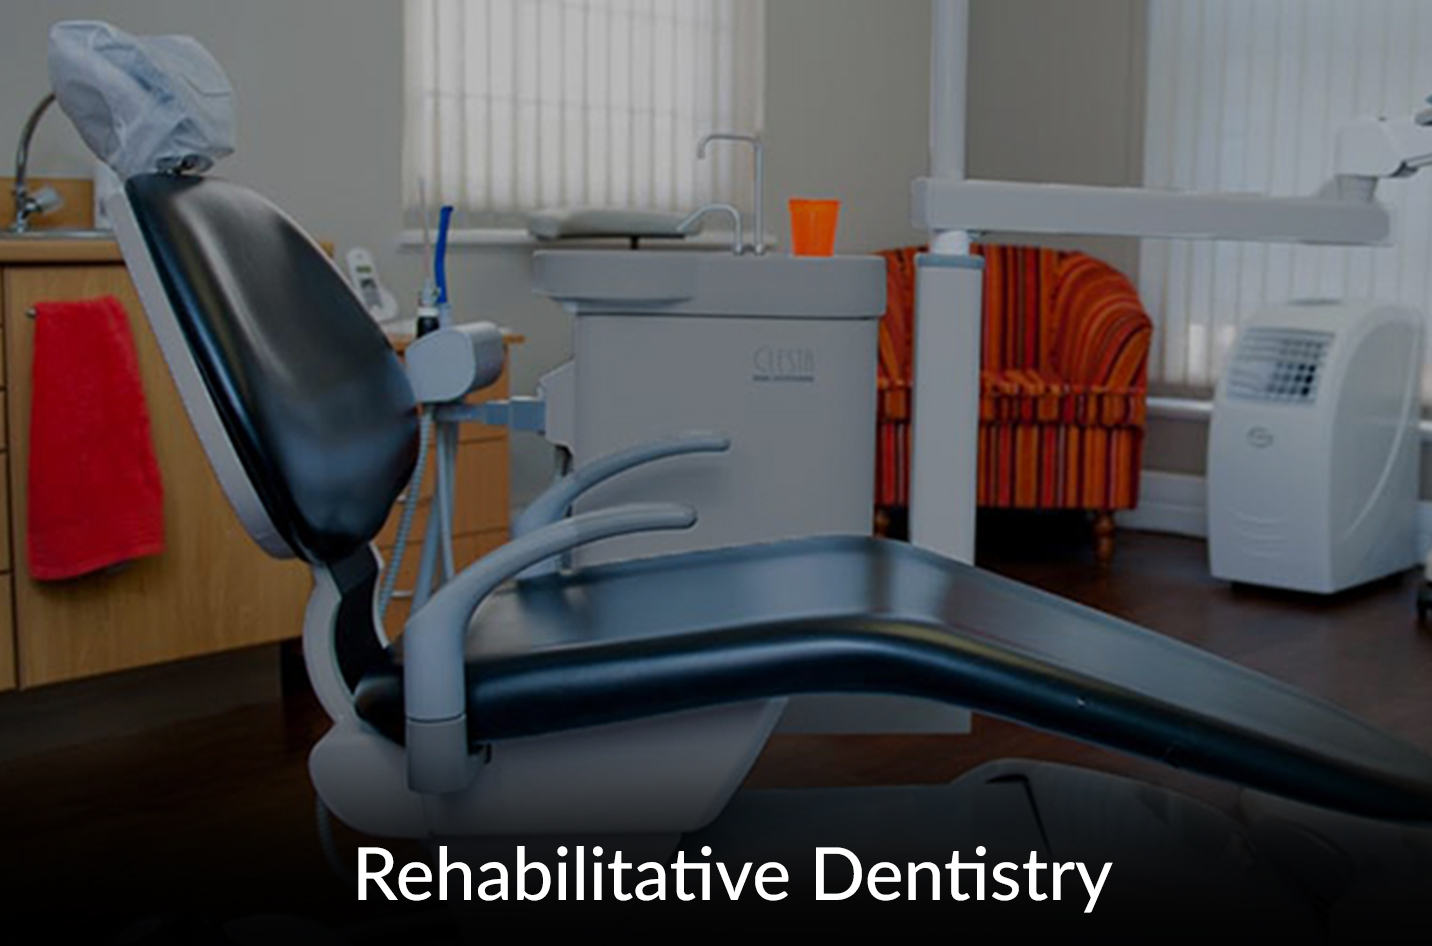 Rehabilitative Dentistry